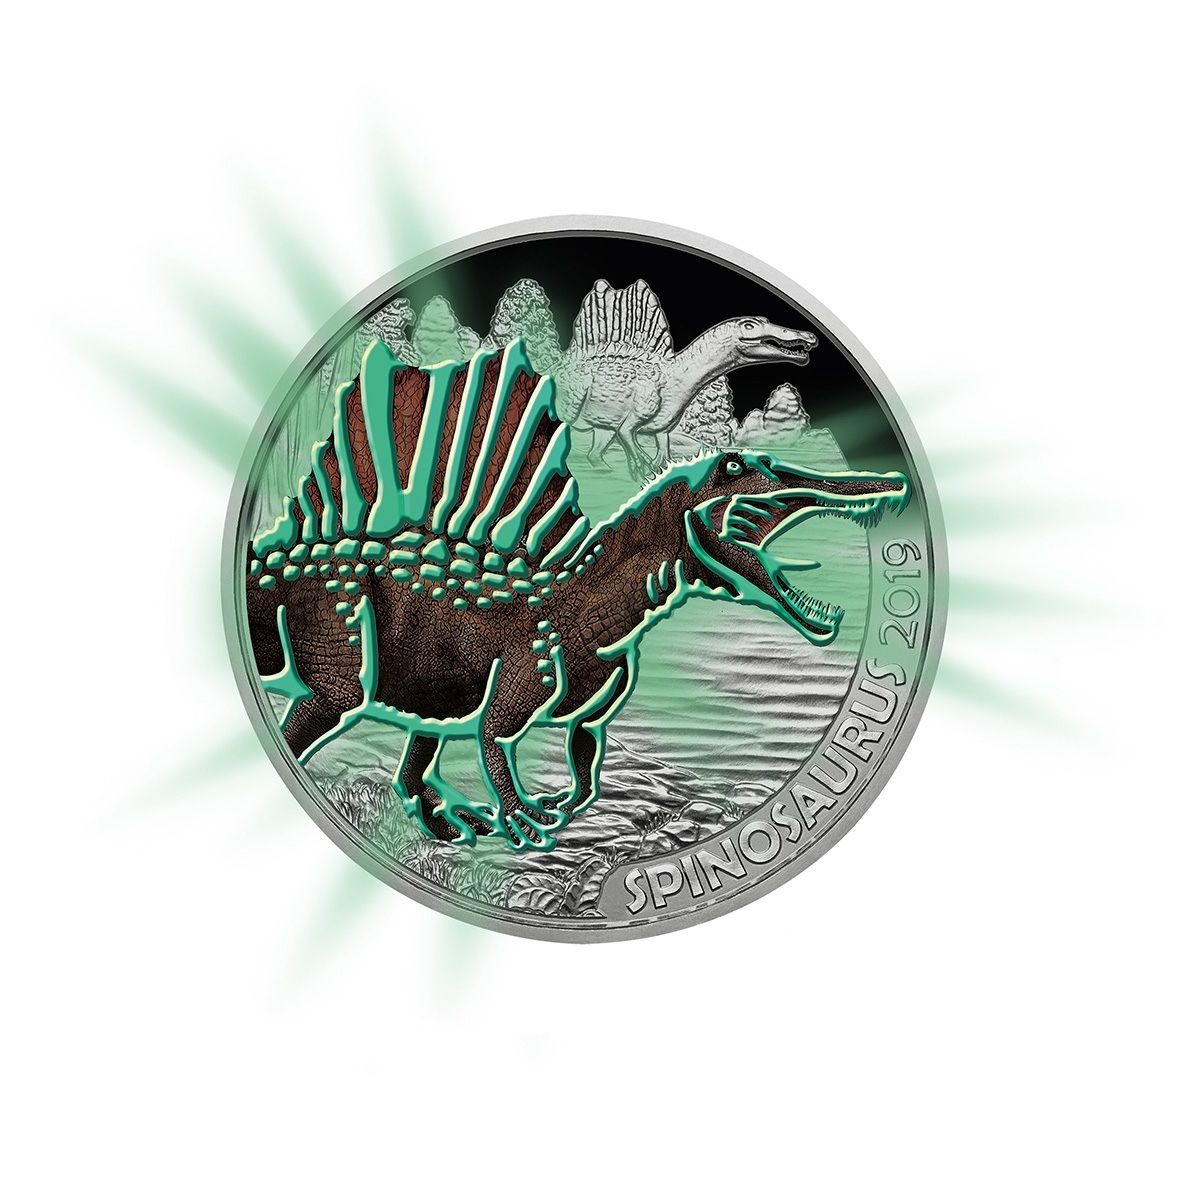 3 euro Austria 2019 - Spinosaurus Reverse (glow-in-the-dark) (zoom)